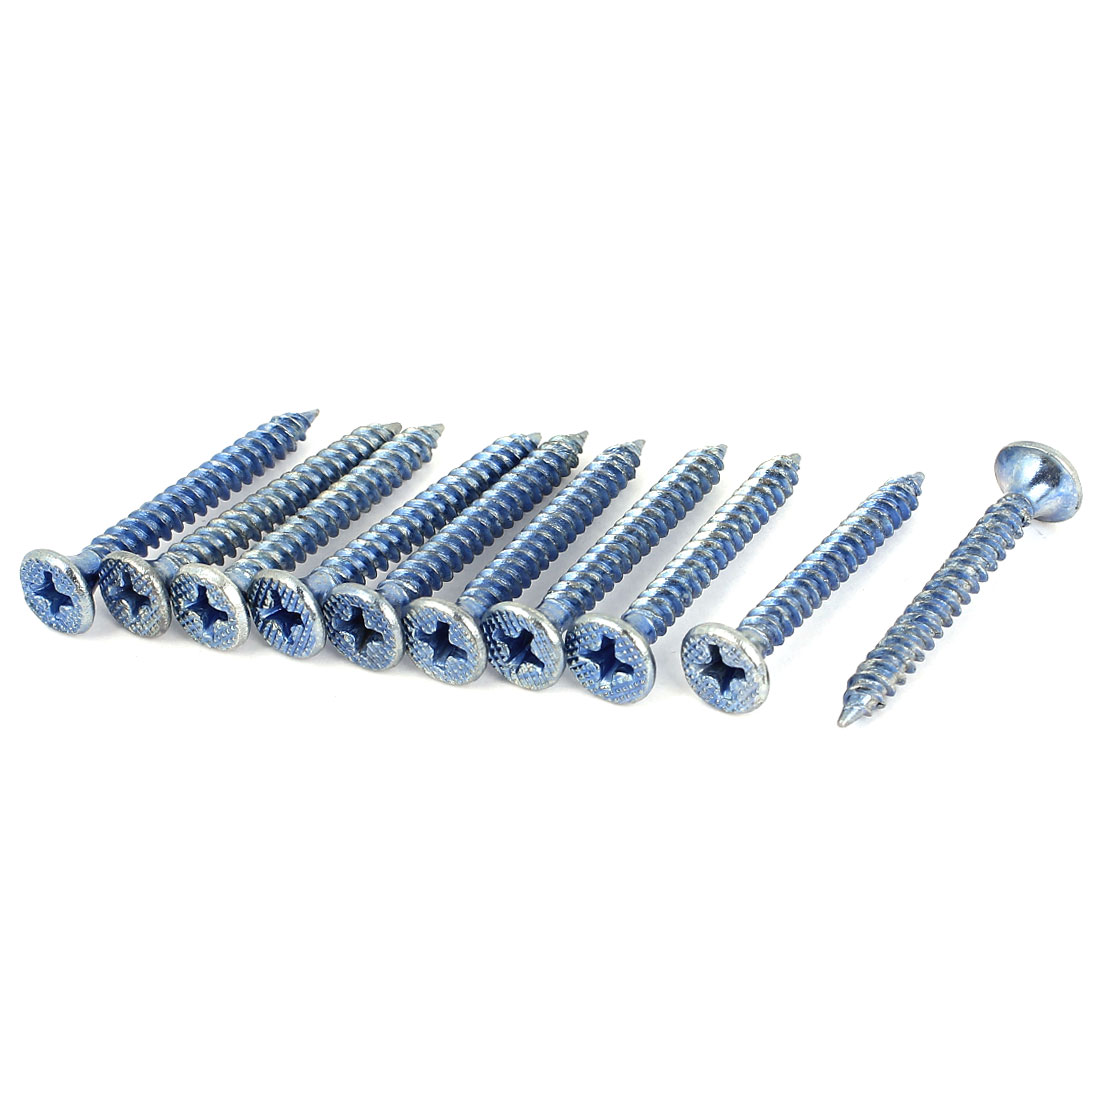 Industry 33mmx4mm Threaded Self Tapping Screws Drilling Bolts 10 Pcs